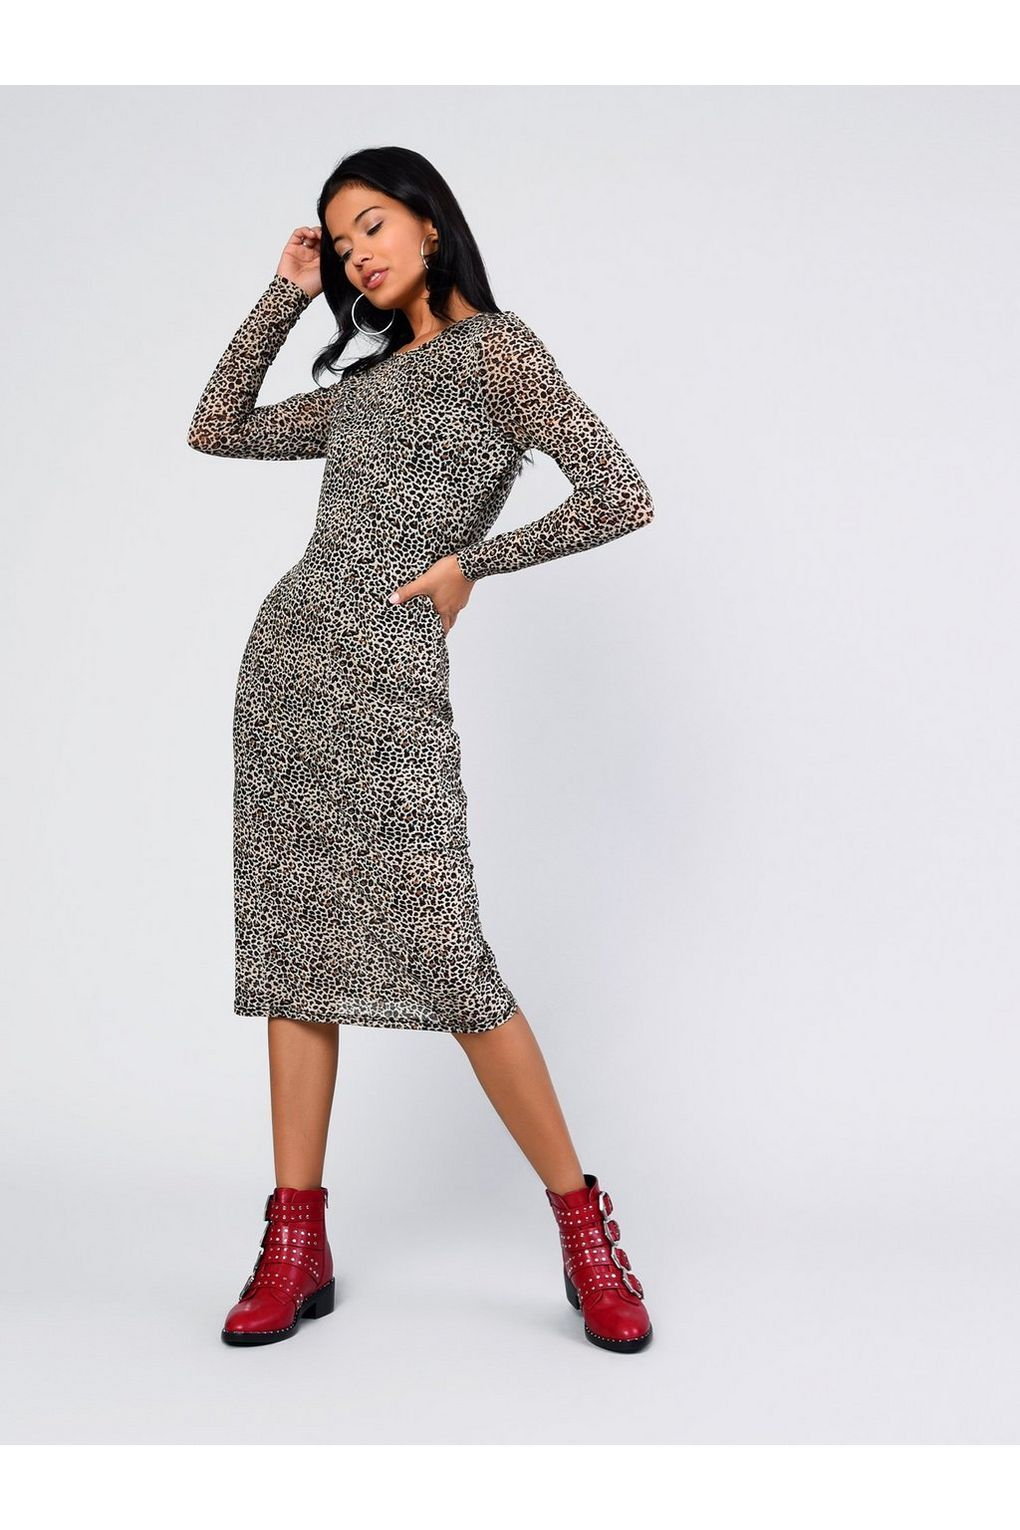 9bd8256c6d7   Animal Printed Midi Dress by Glamorous - Dresses - Clothing - Topshop